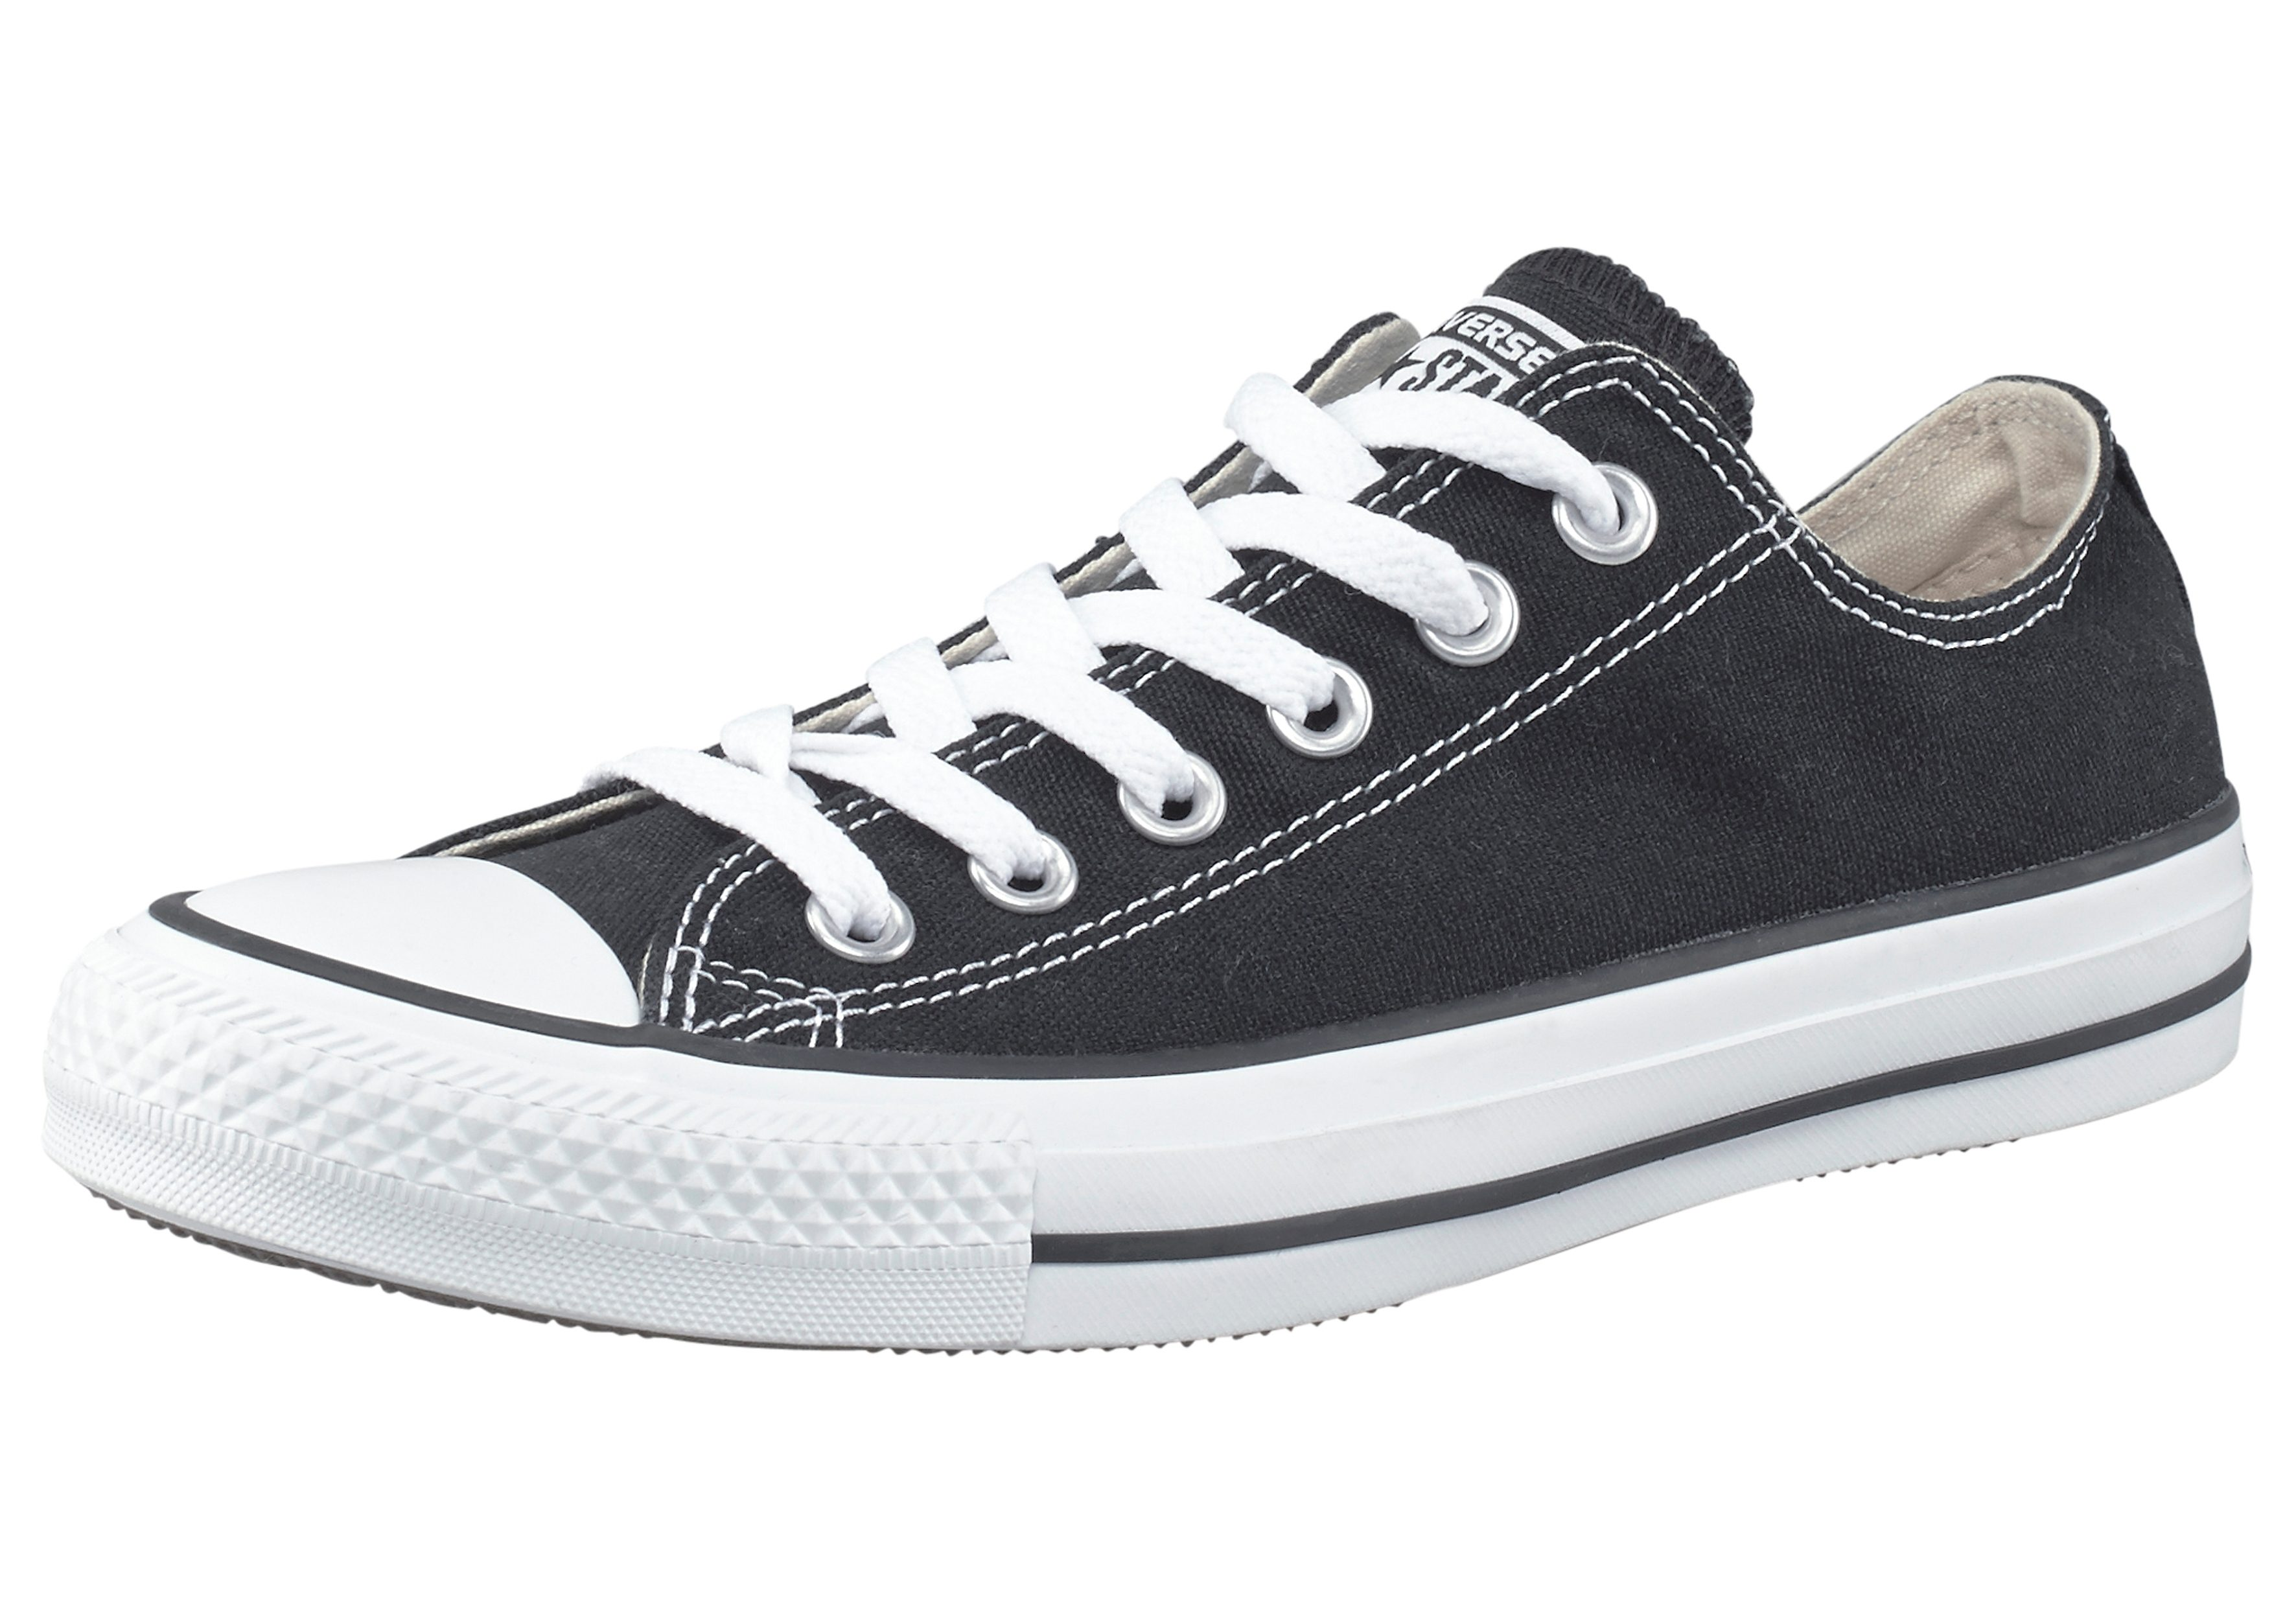 Converse »Chuck Taylor All Star Core Ox« Sneaker, Weiches Obermaterial aus Textil online kaufen | OTTO